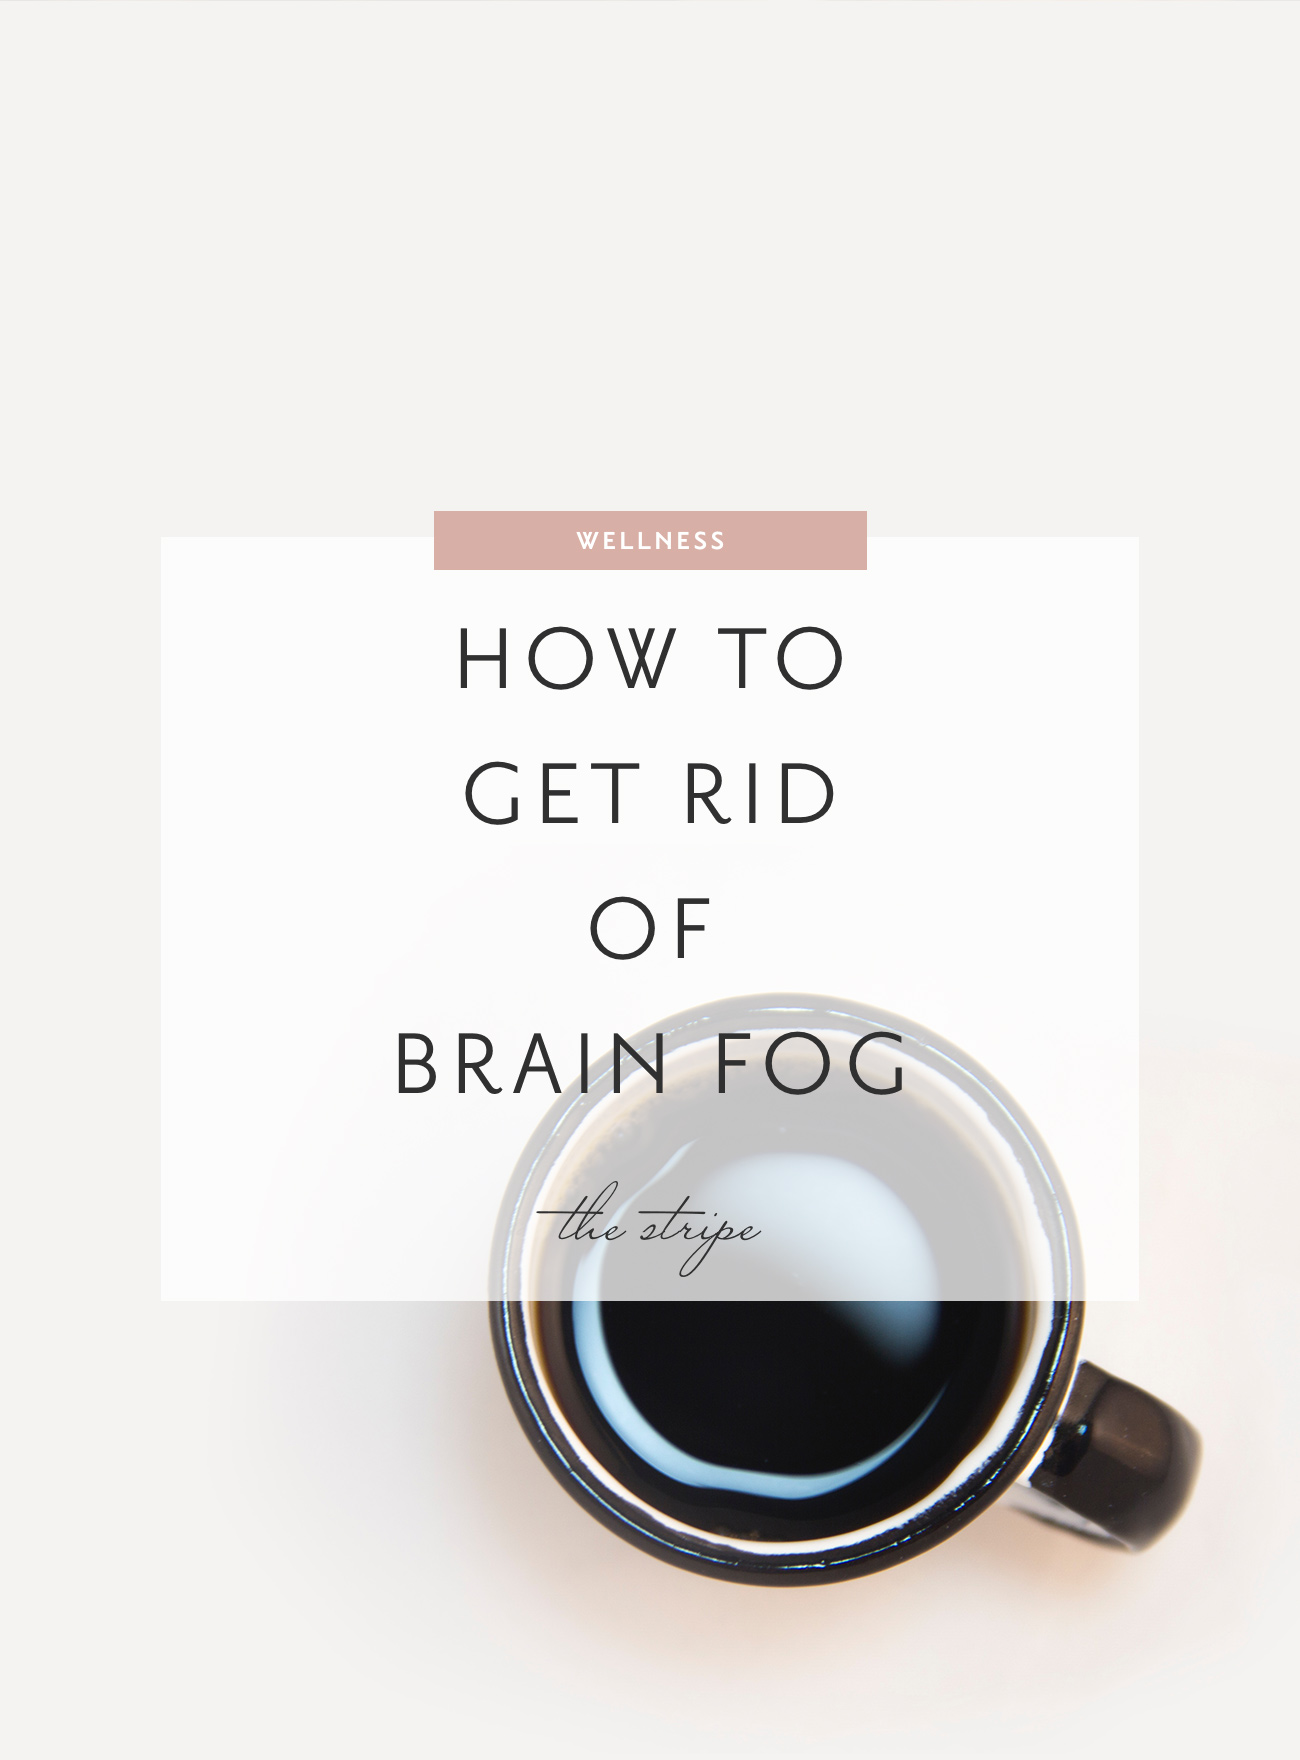 Wellness: How to Get Rid of Brain Fog - The Stripe by Grace Atwood